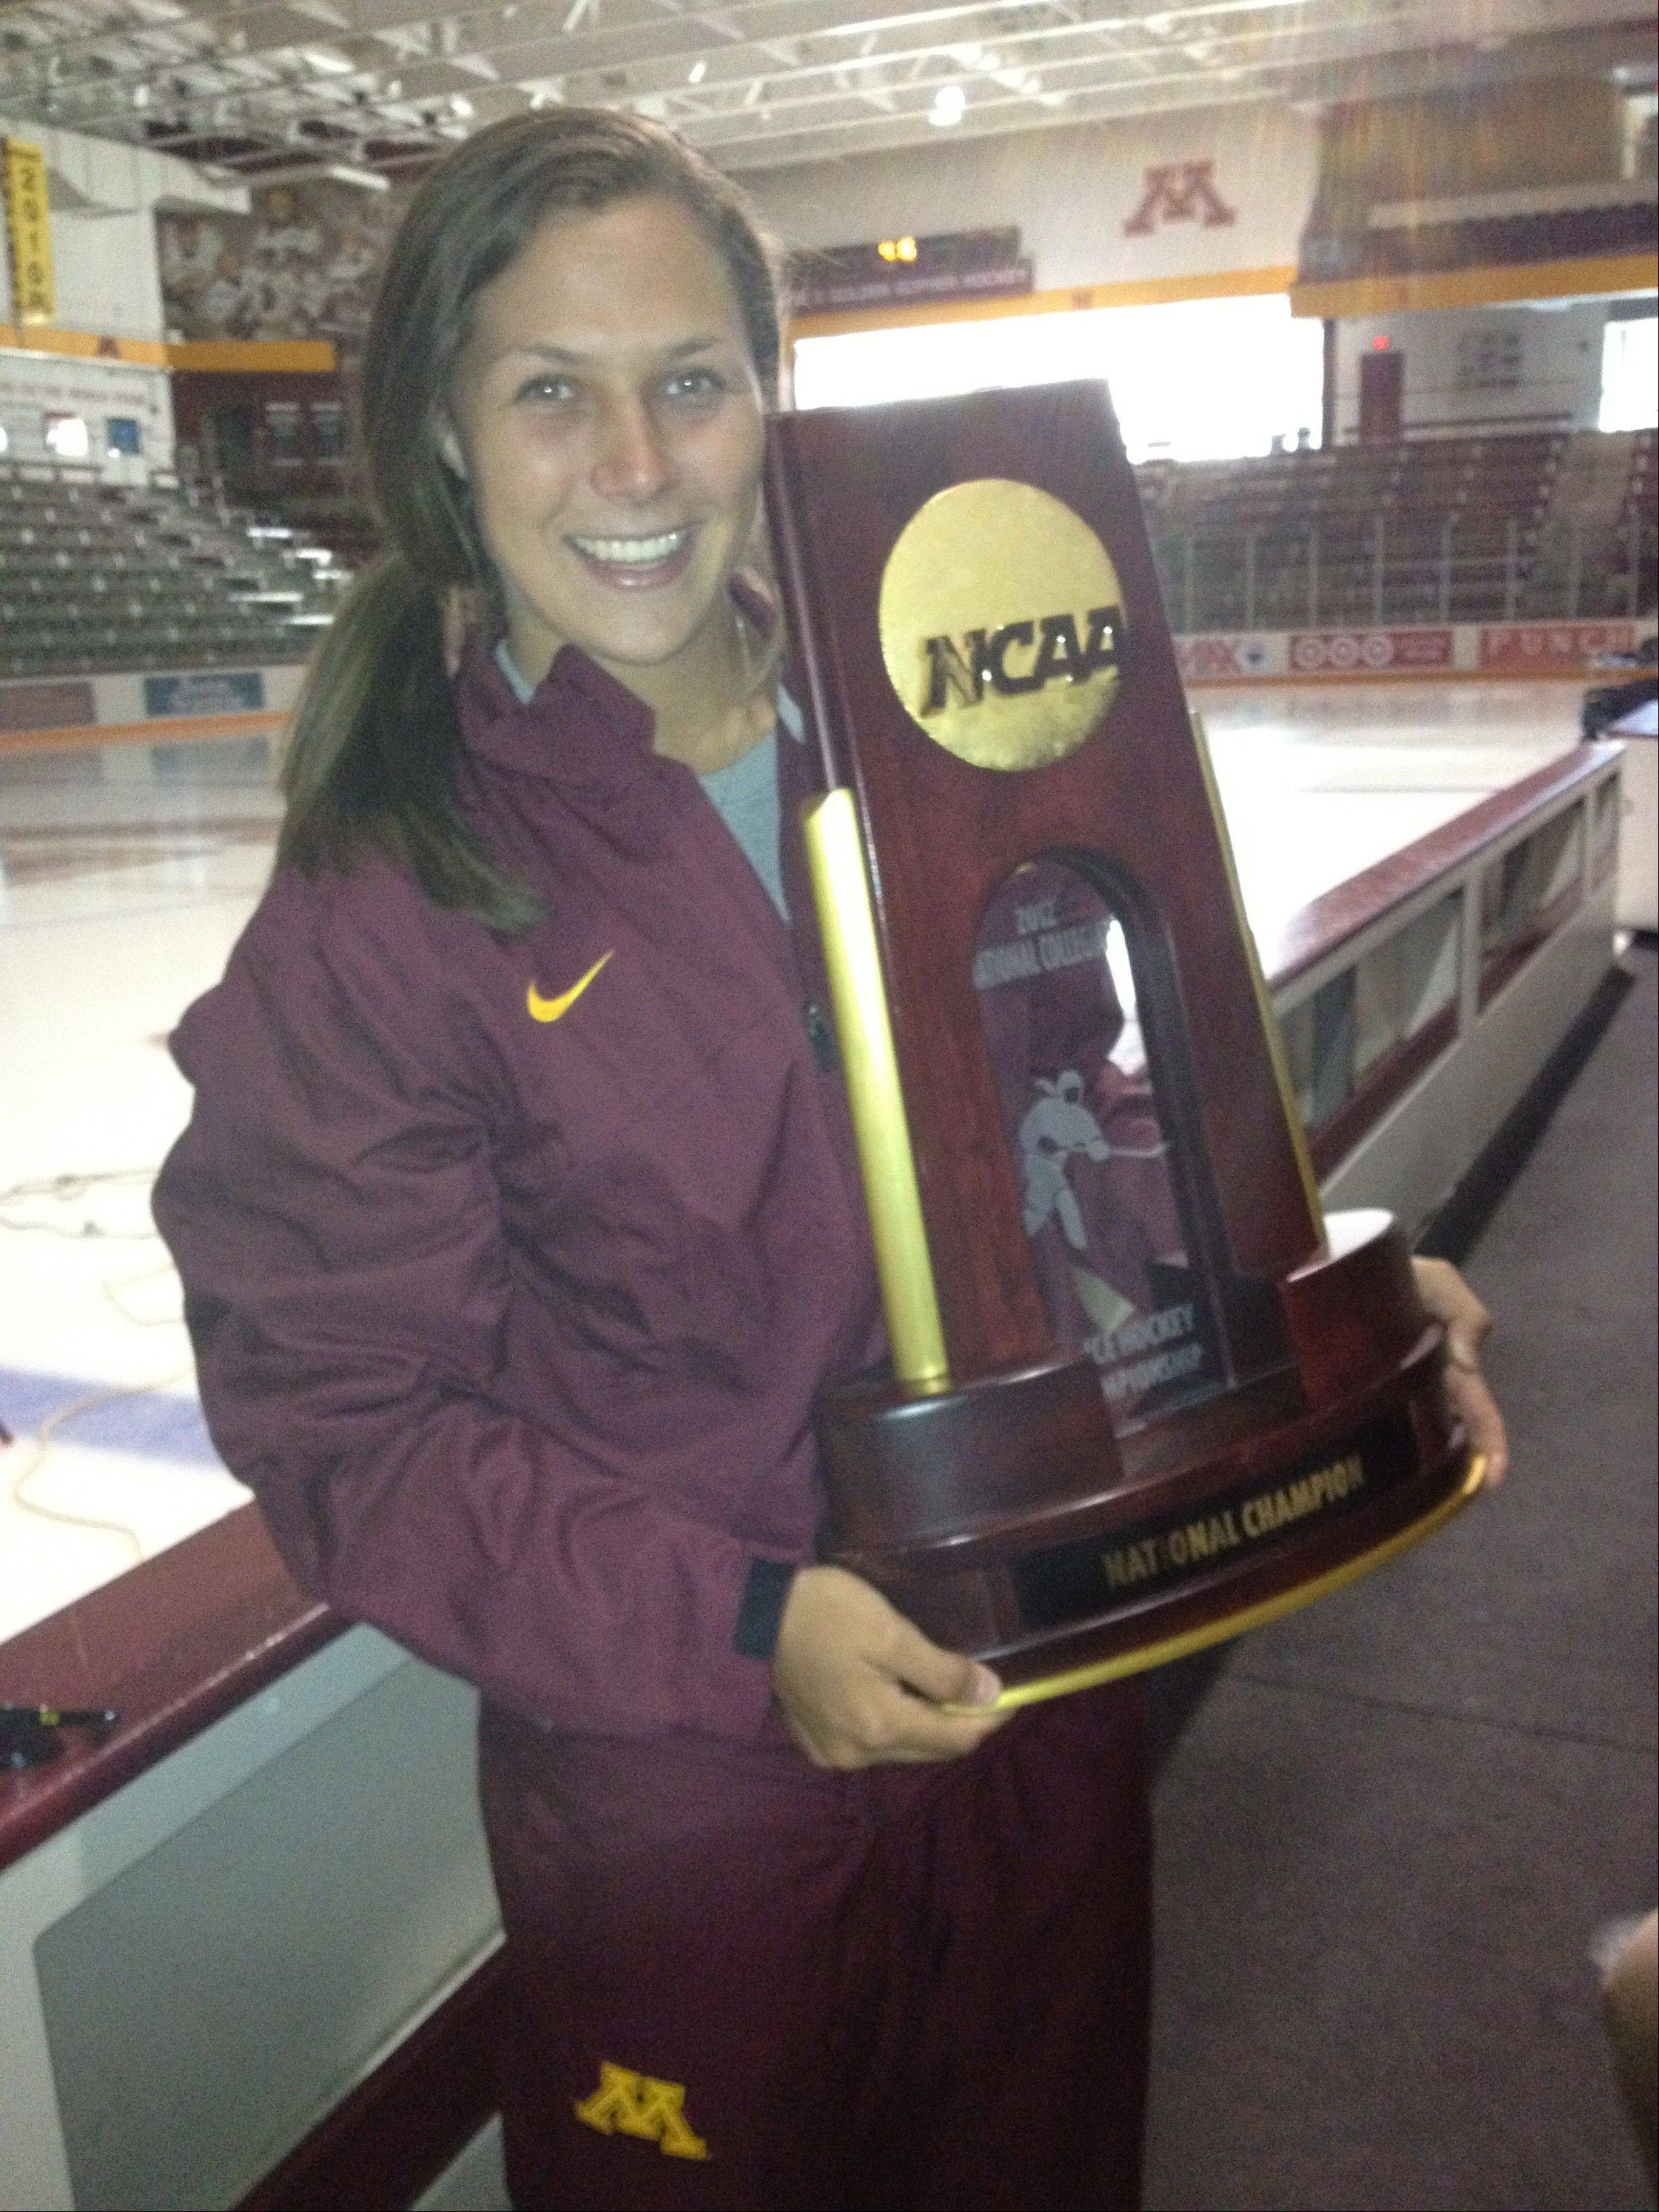 Buffalo Grove native Megan Bozek, co-captain of the undefeated University of Minnesota women's ice hockey team, holds the 2012 National Championship trophy.